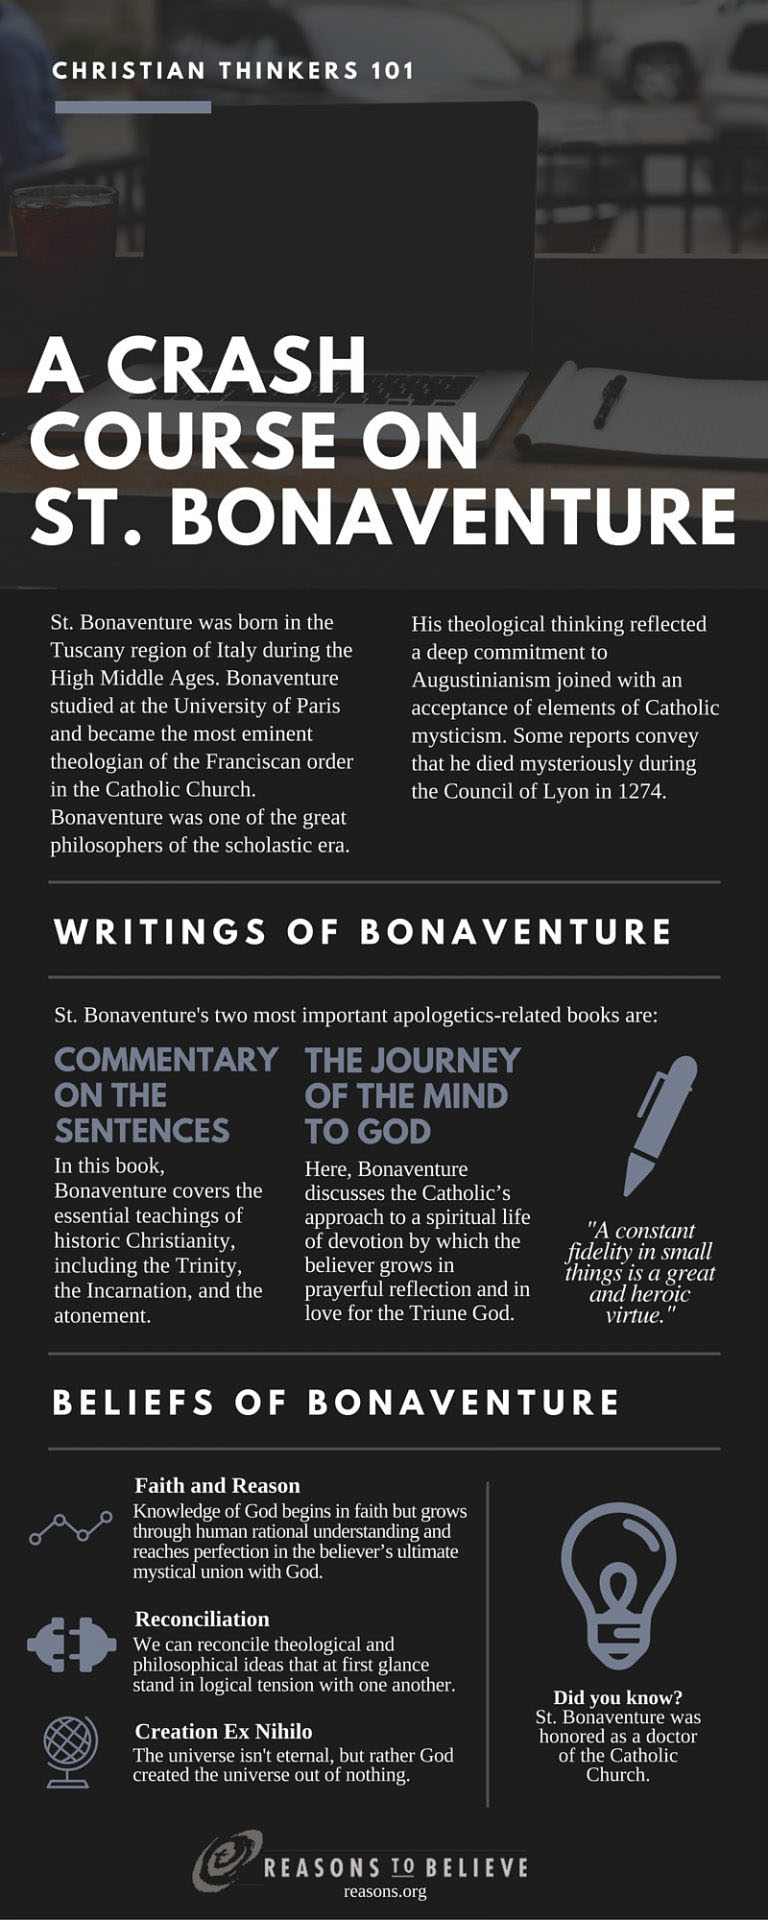 blog__inline--christian-thinkers-101-a-crash-course-on-st-bonaventure